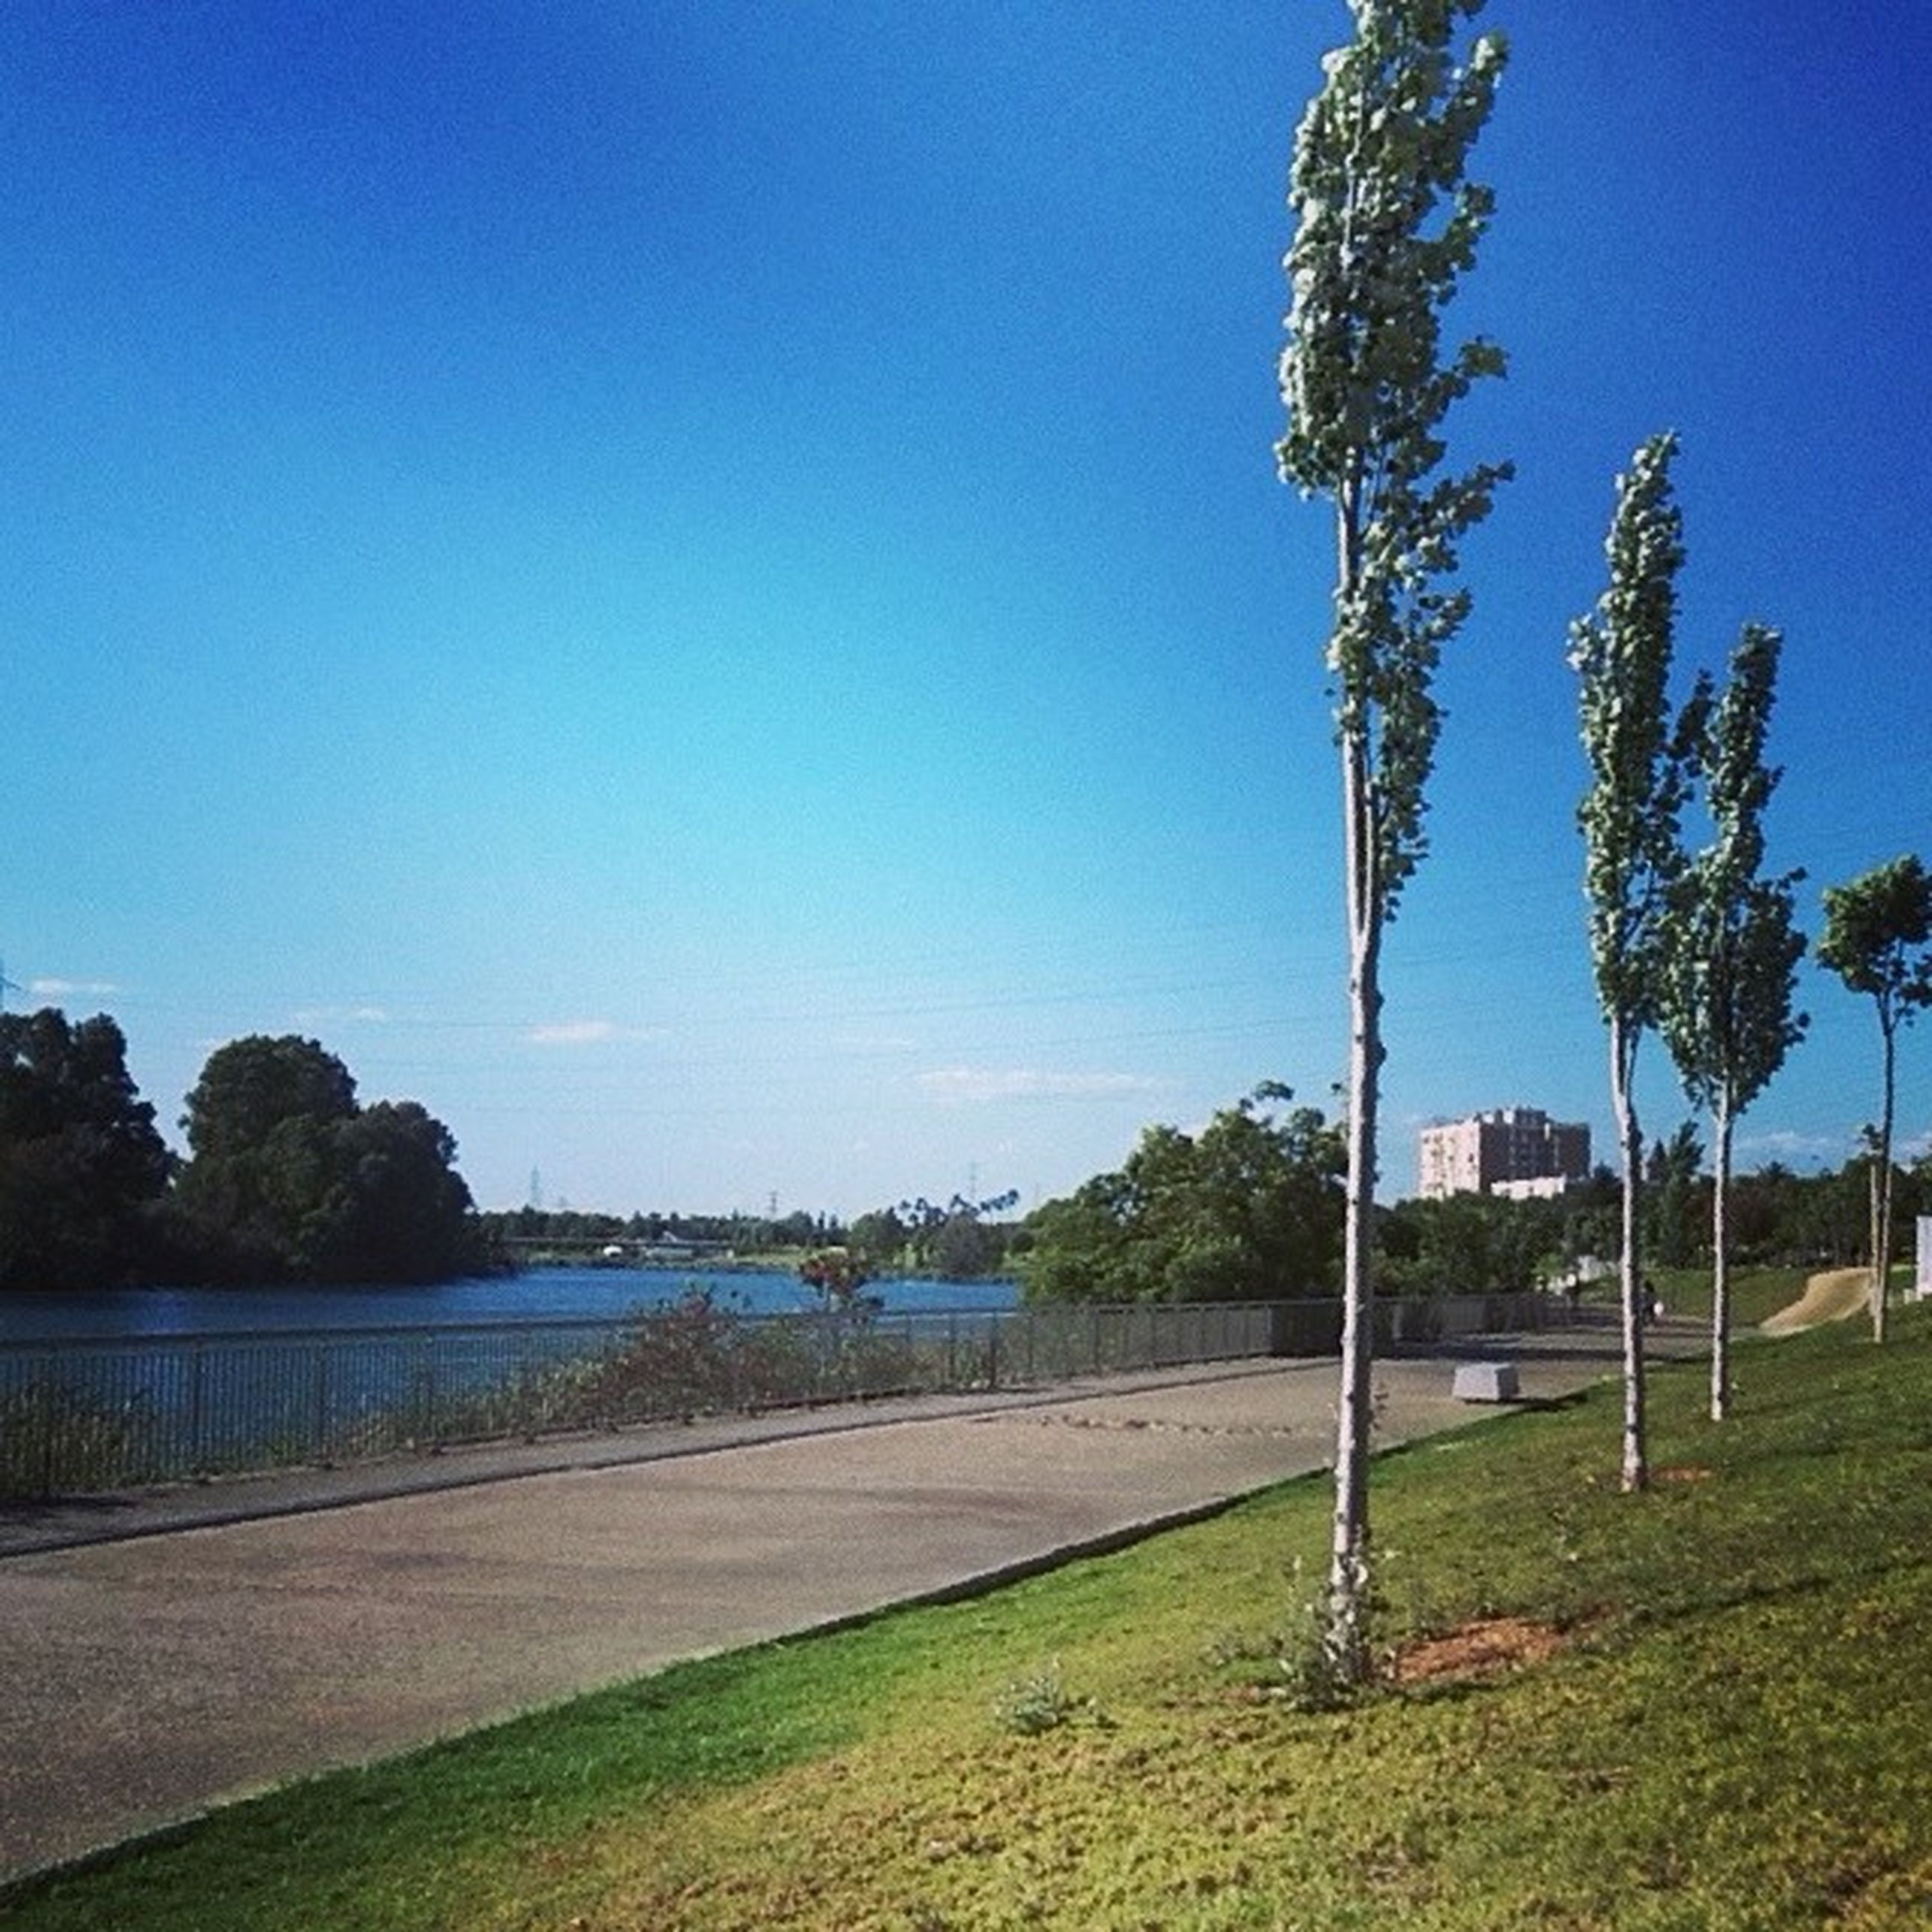 blue, clear sky, tree, copy space, water, tranquility, tranquil scene, sky, grass, nature, road, scenics, sunlight, beauty in nature, outdoors, shadow, sea, growth, day, river